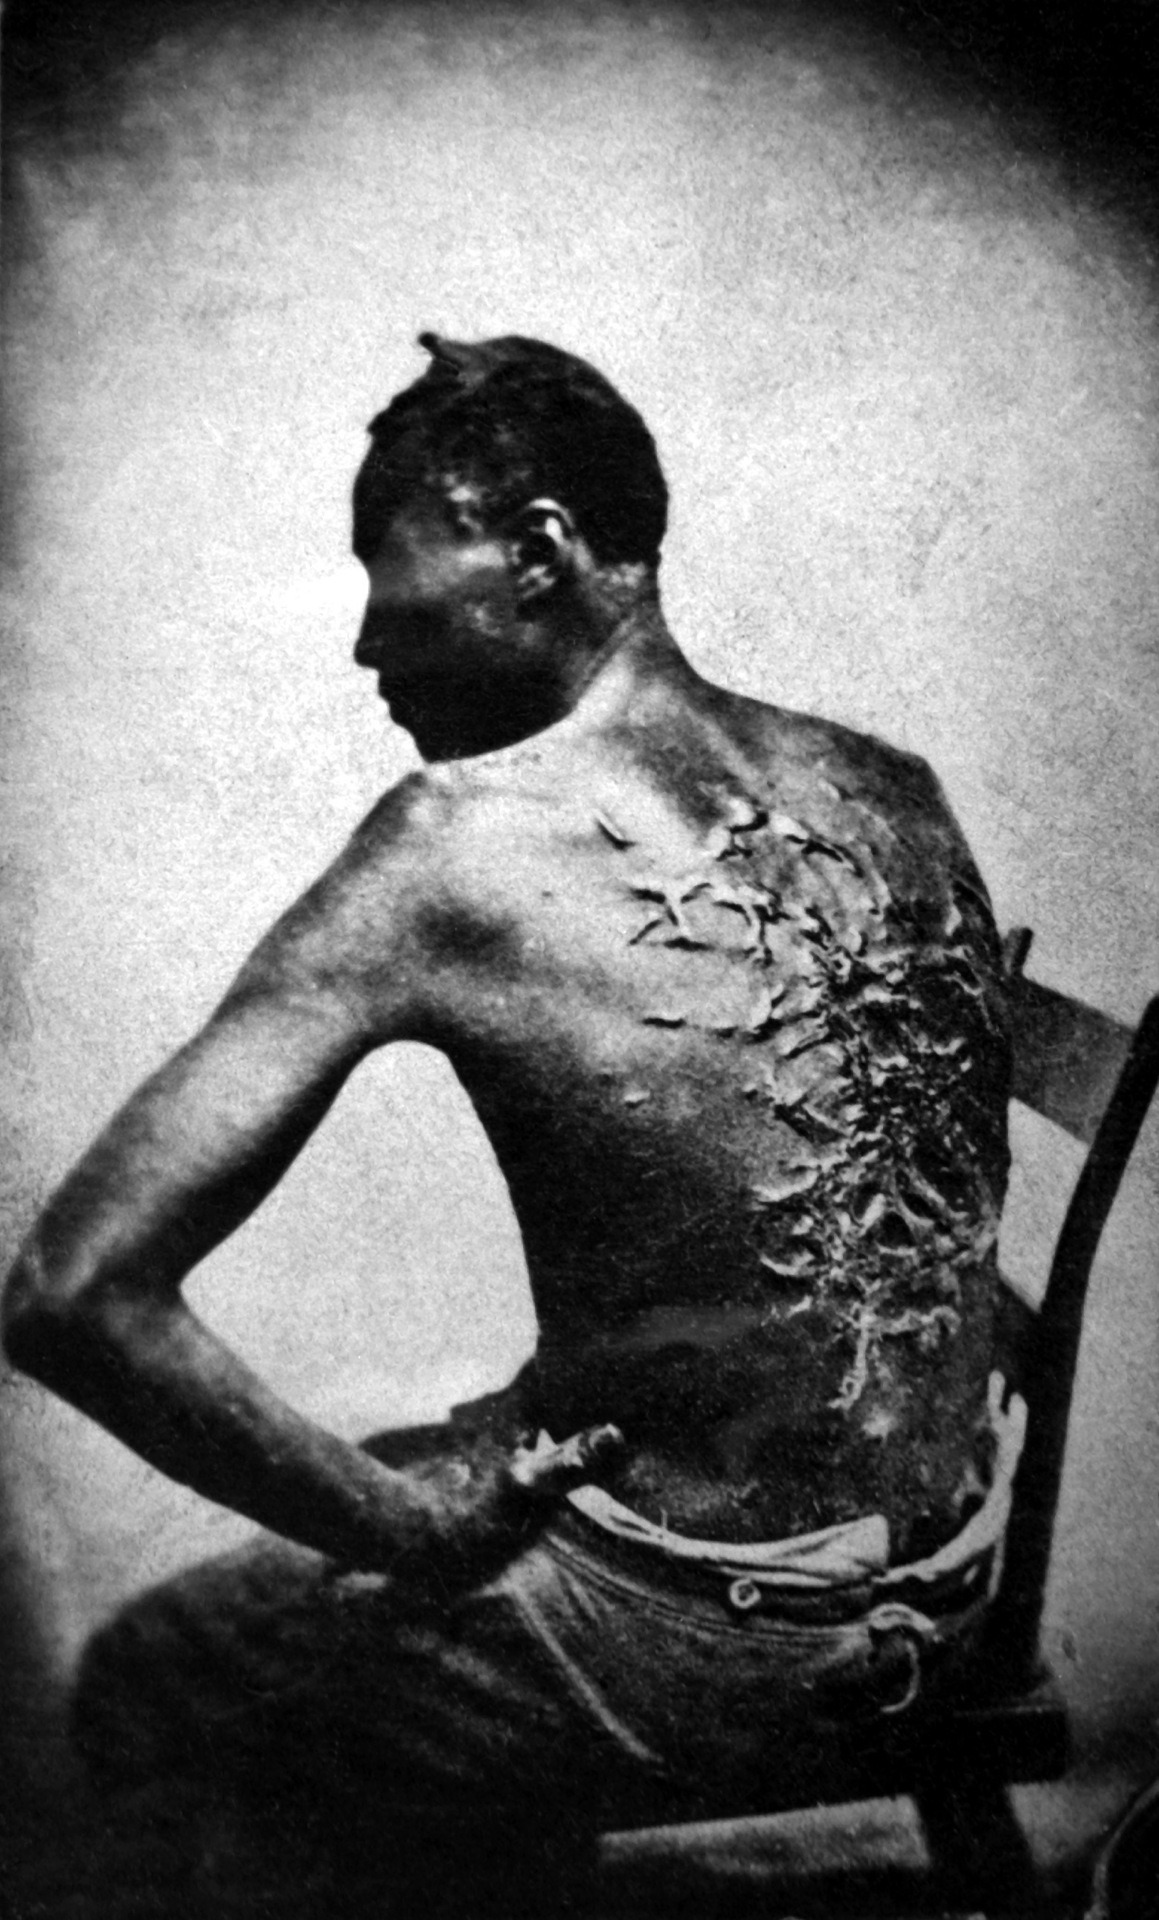 whipped African American slave, Baton Rouge, Louisiana, April 2, 1863